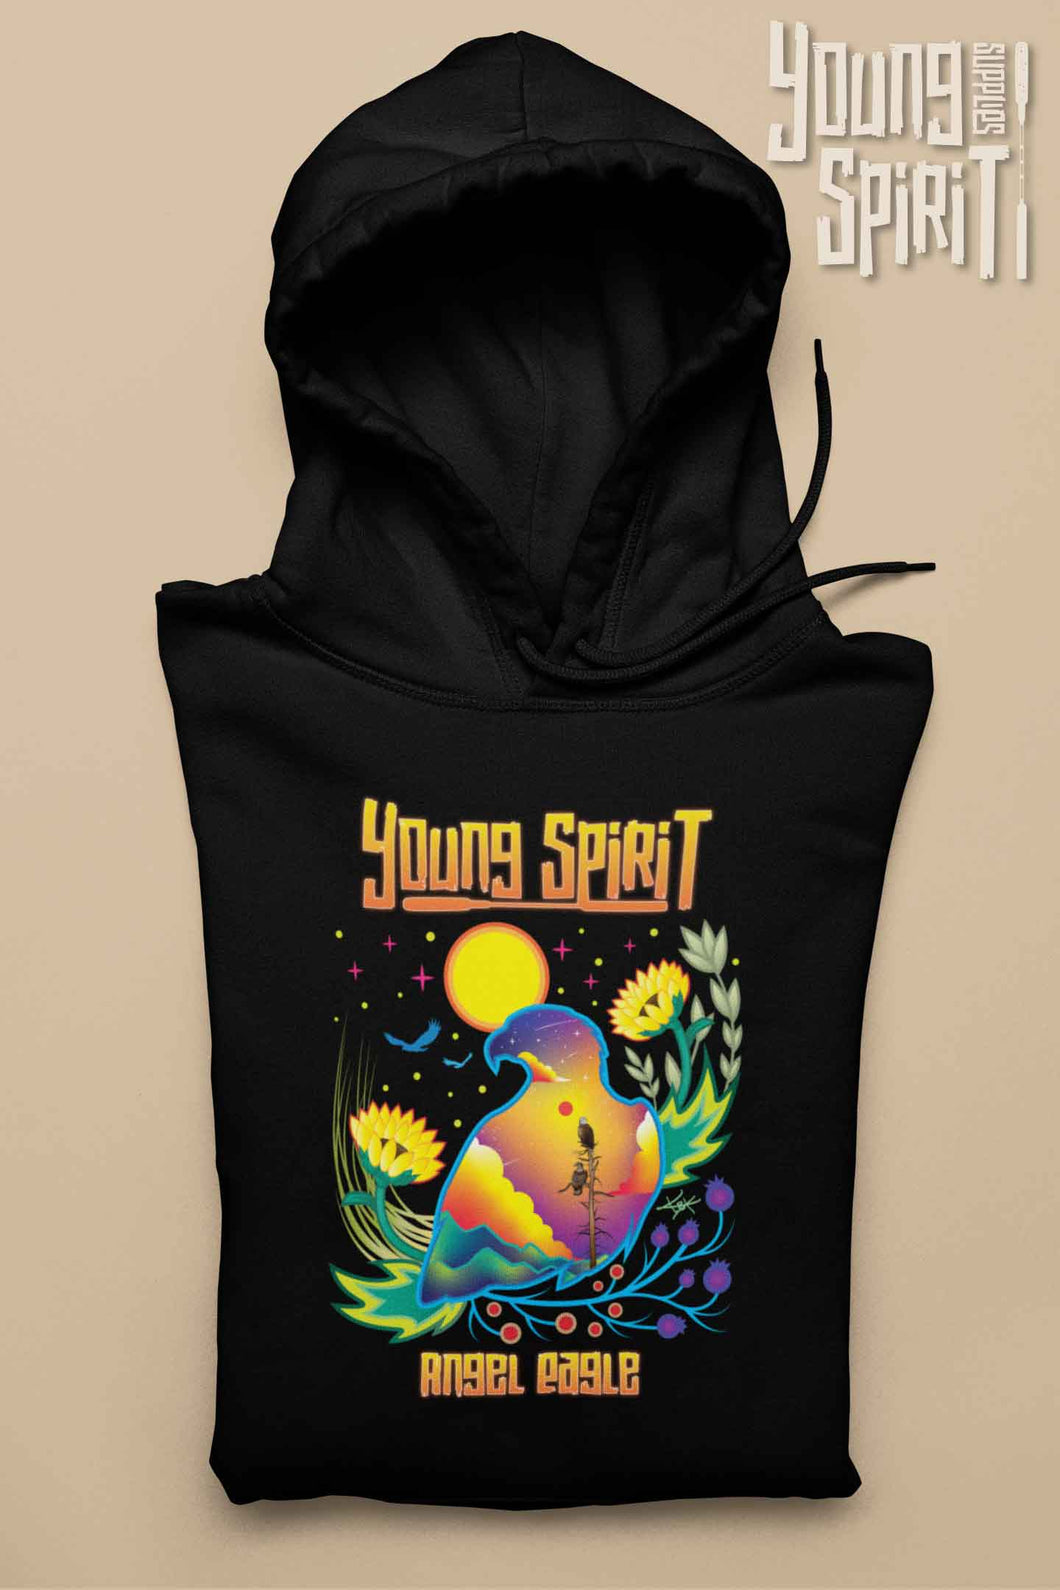 Angel Eagle - Hoodie, Design by Kaylene BigKnife